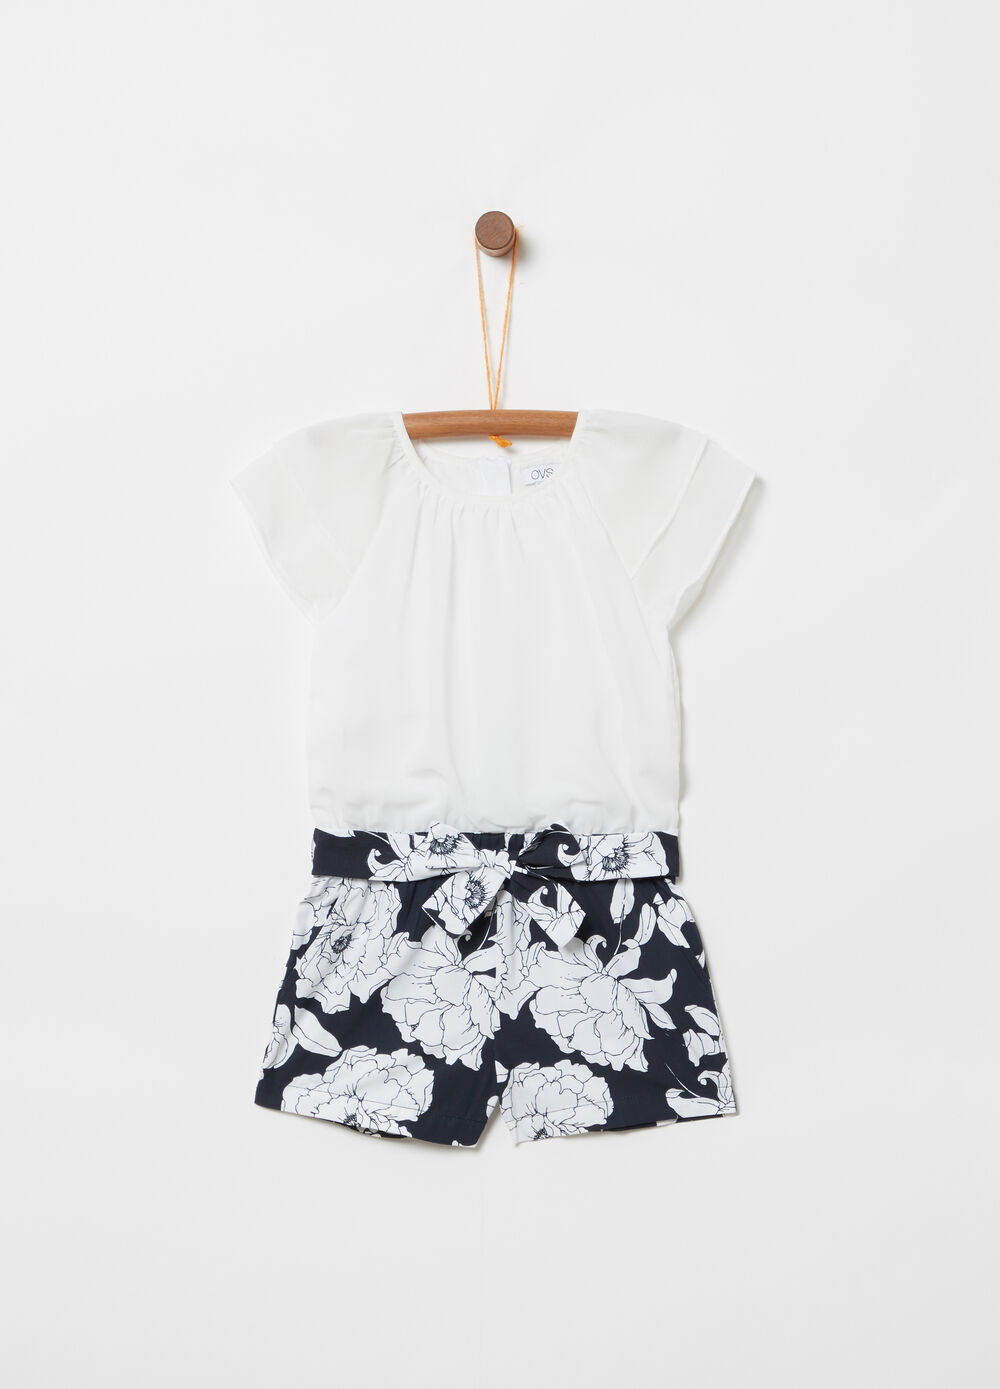 ***Short suit top and shorts floral sash